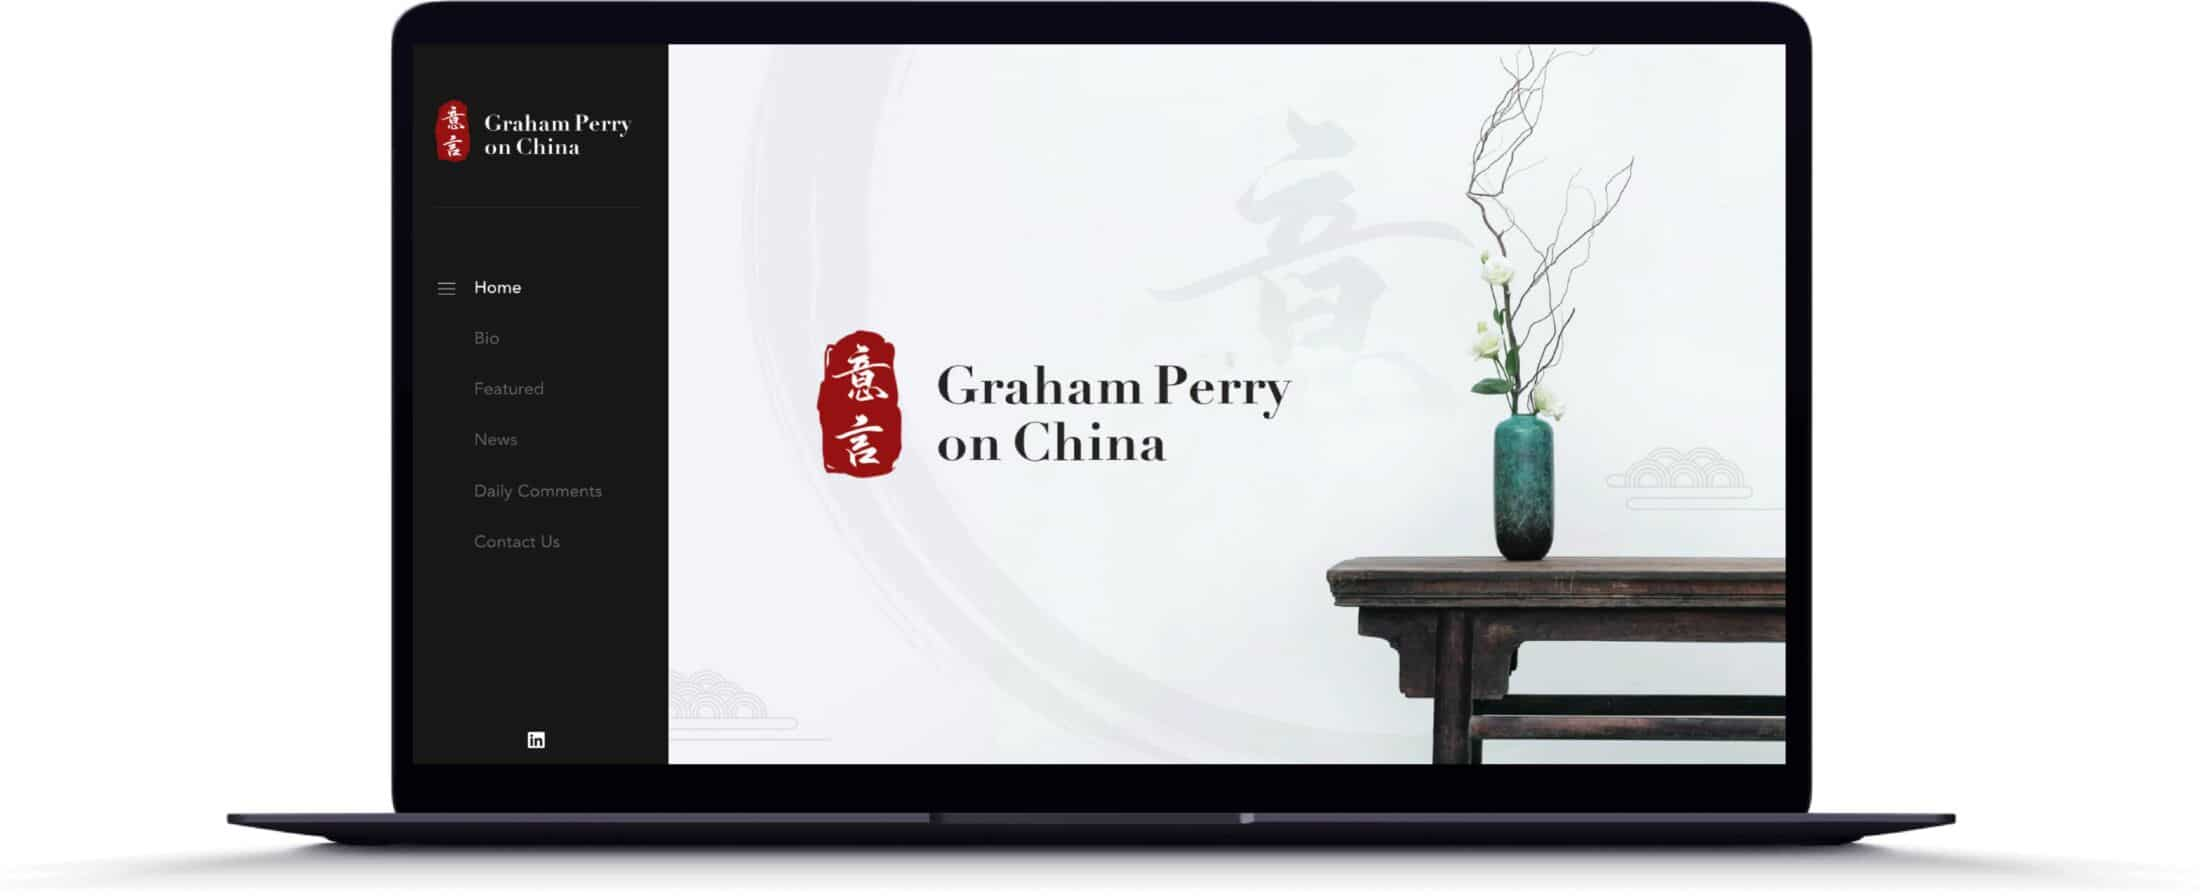 Graham Perry on China Homepage